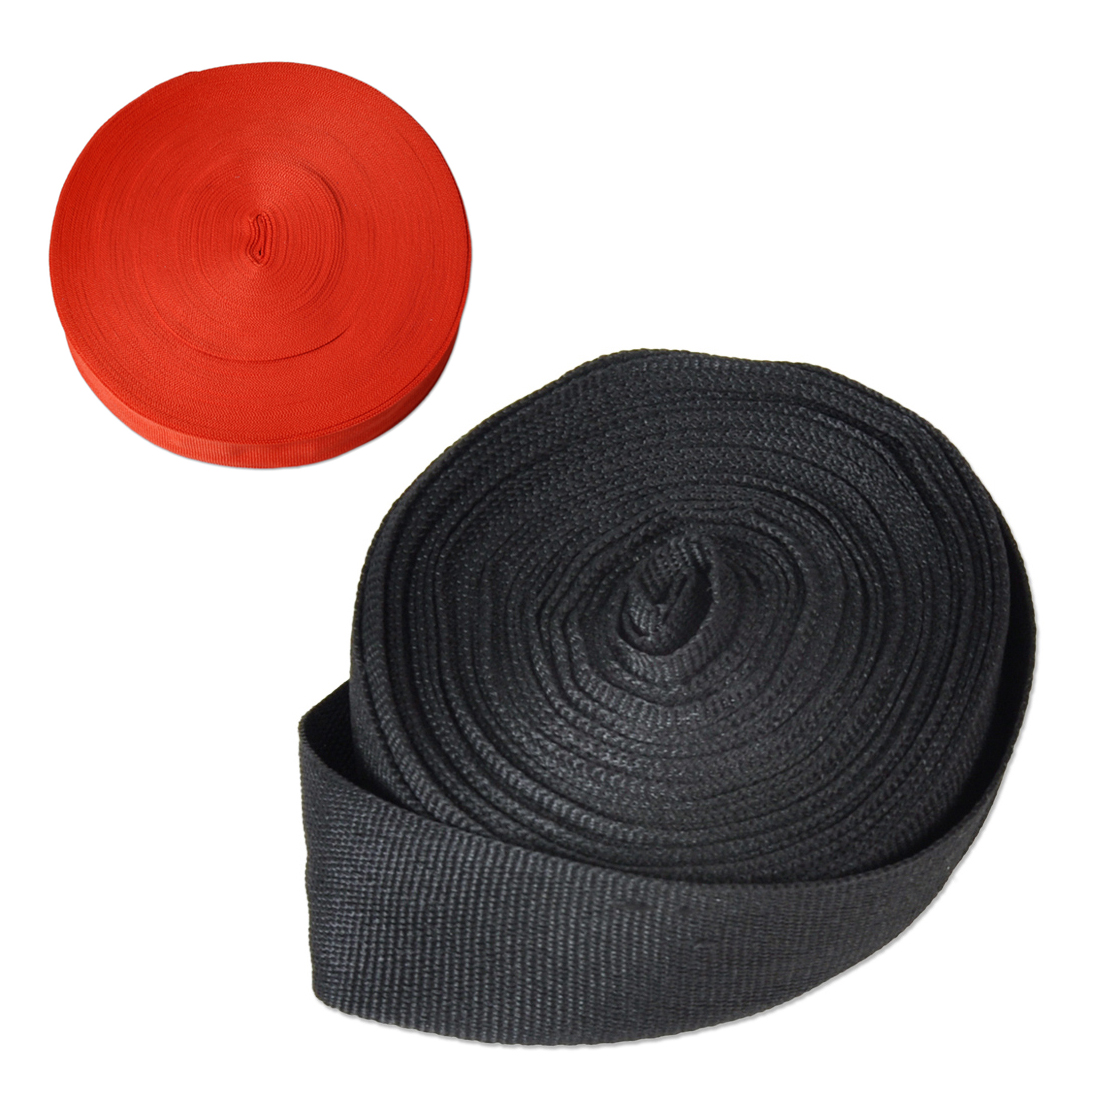 High Quality Nylon Strap Webbing Camping Strapping 10 Yards Length 1 Inch Width Drop Shipping